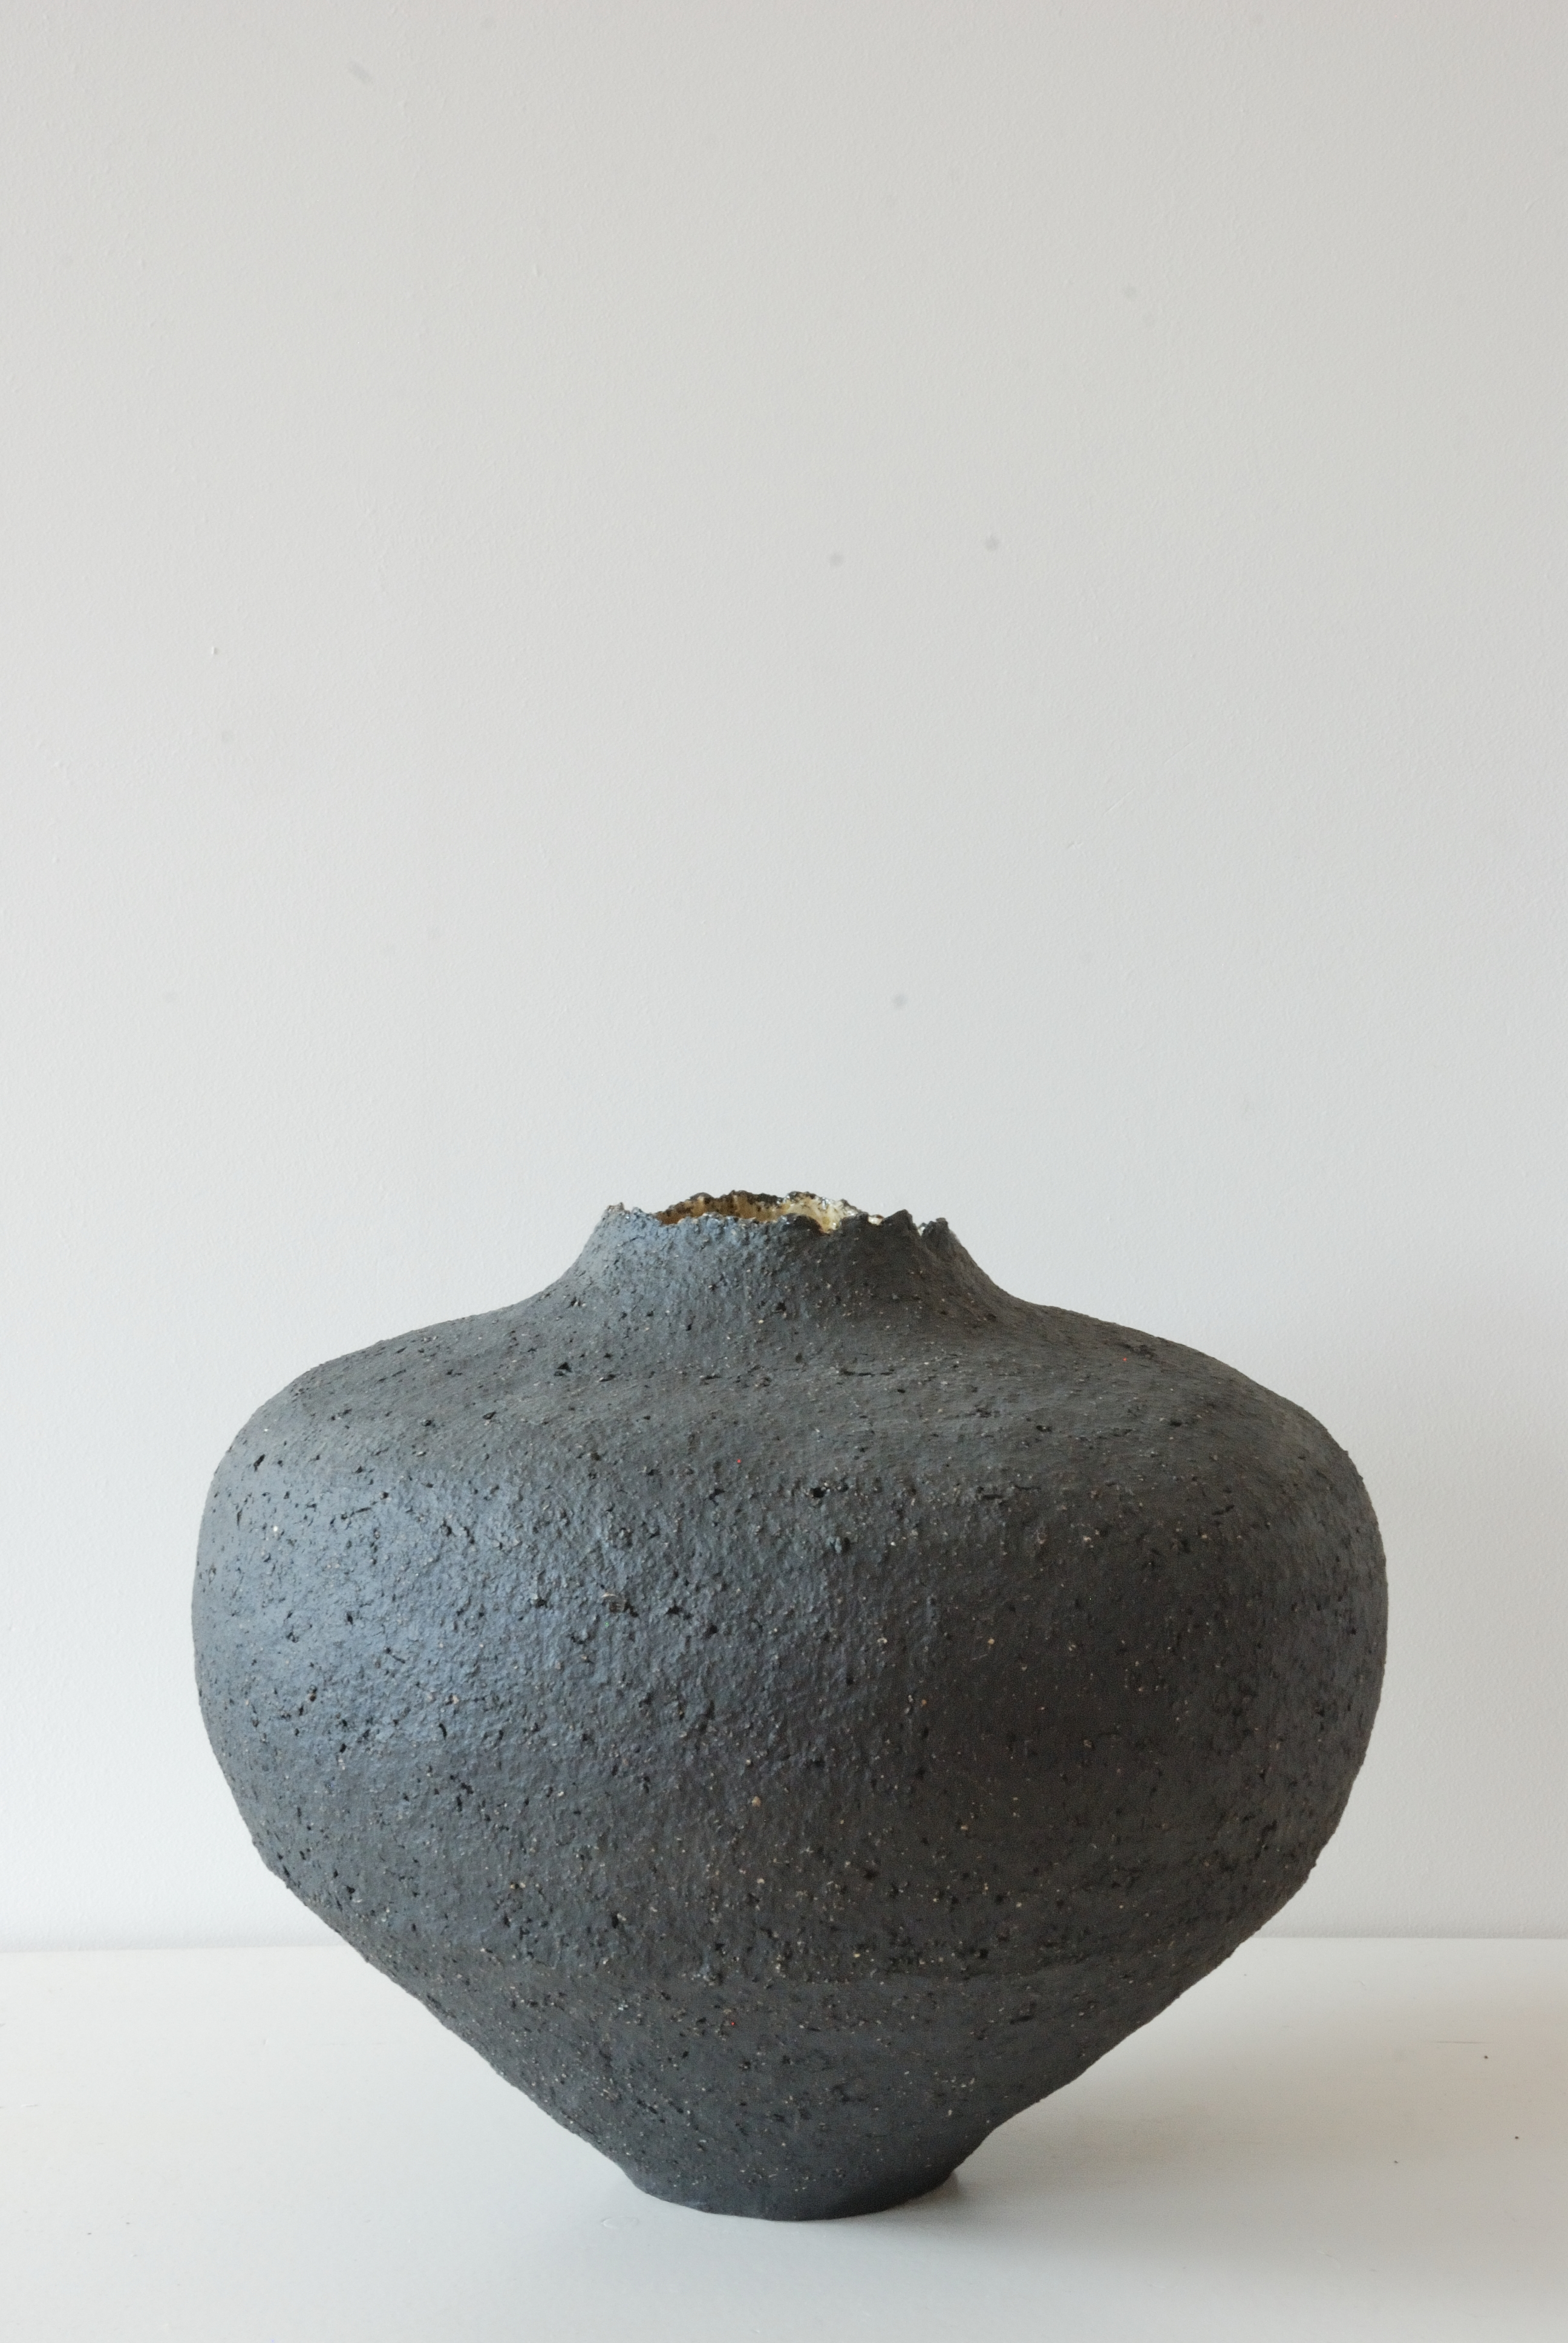 L African stone (2009)